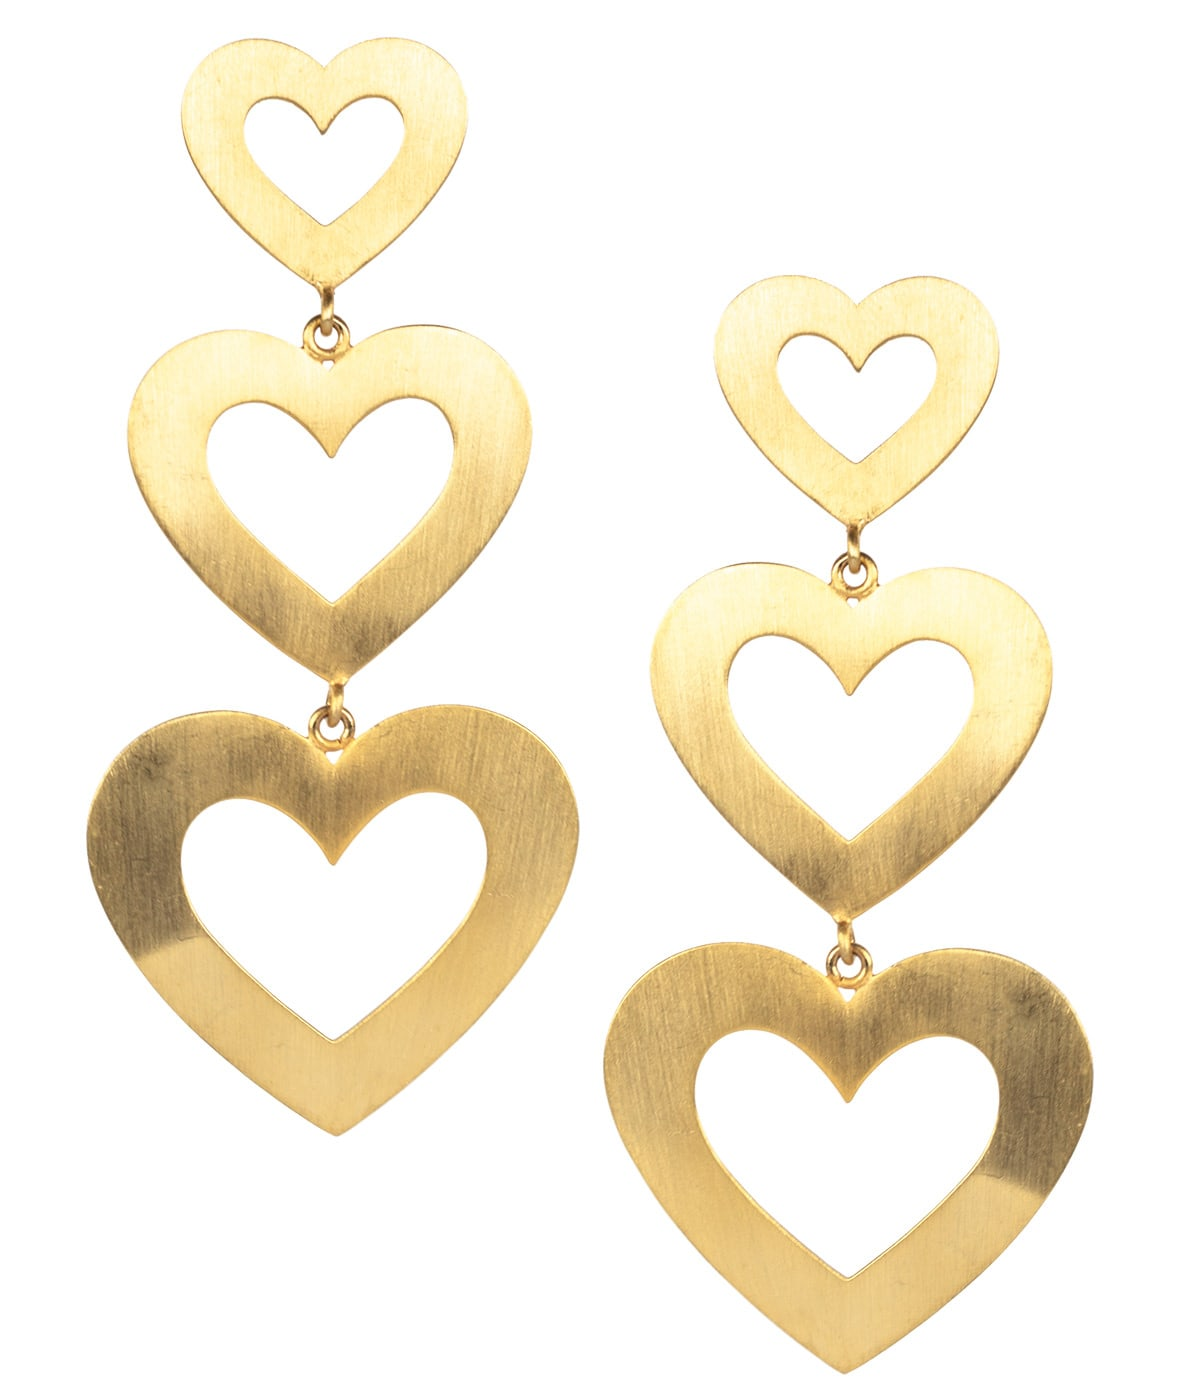 brushed-gold-heart-1.jpg